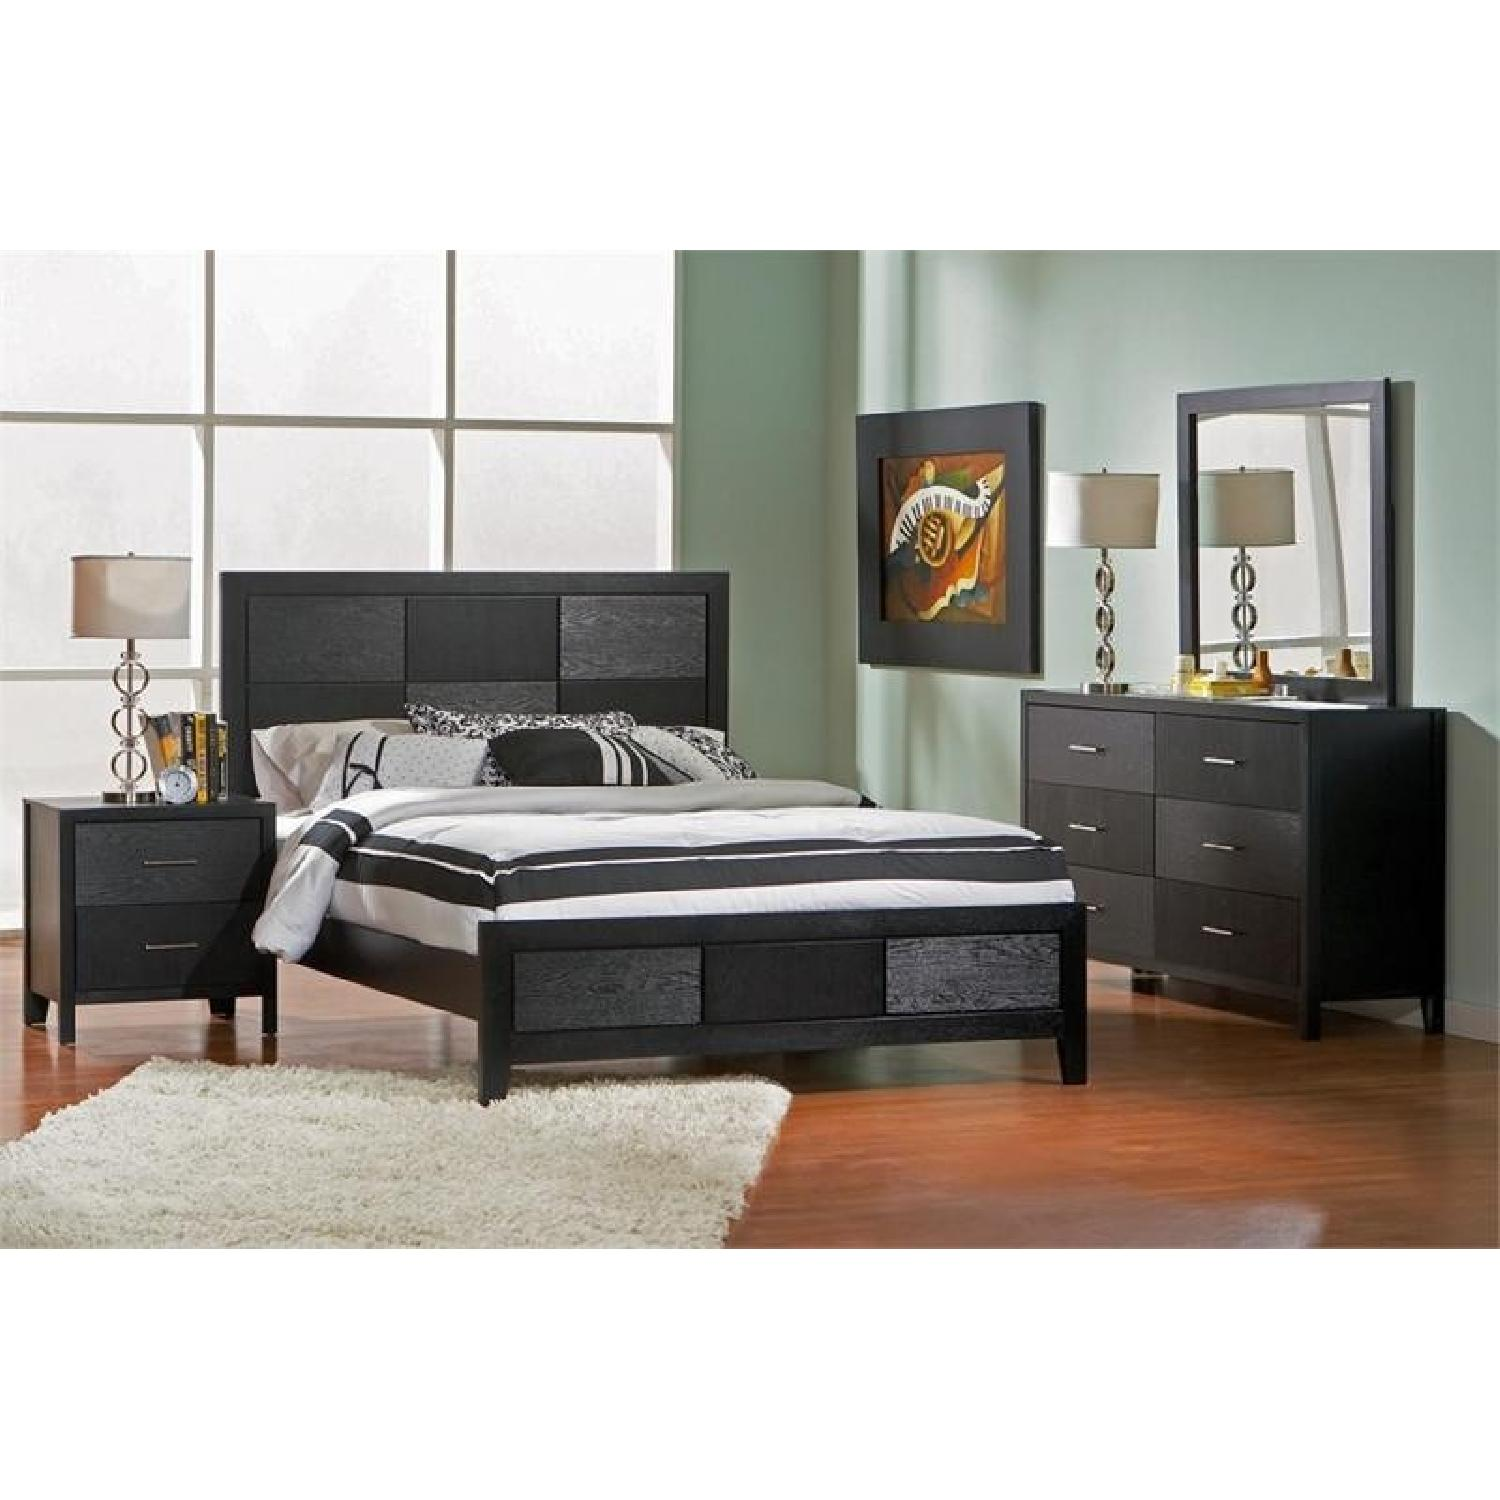 Modern Style 2 Drawer Nightstand In Black Finish W Silver Handles